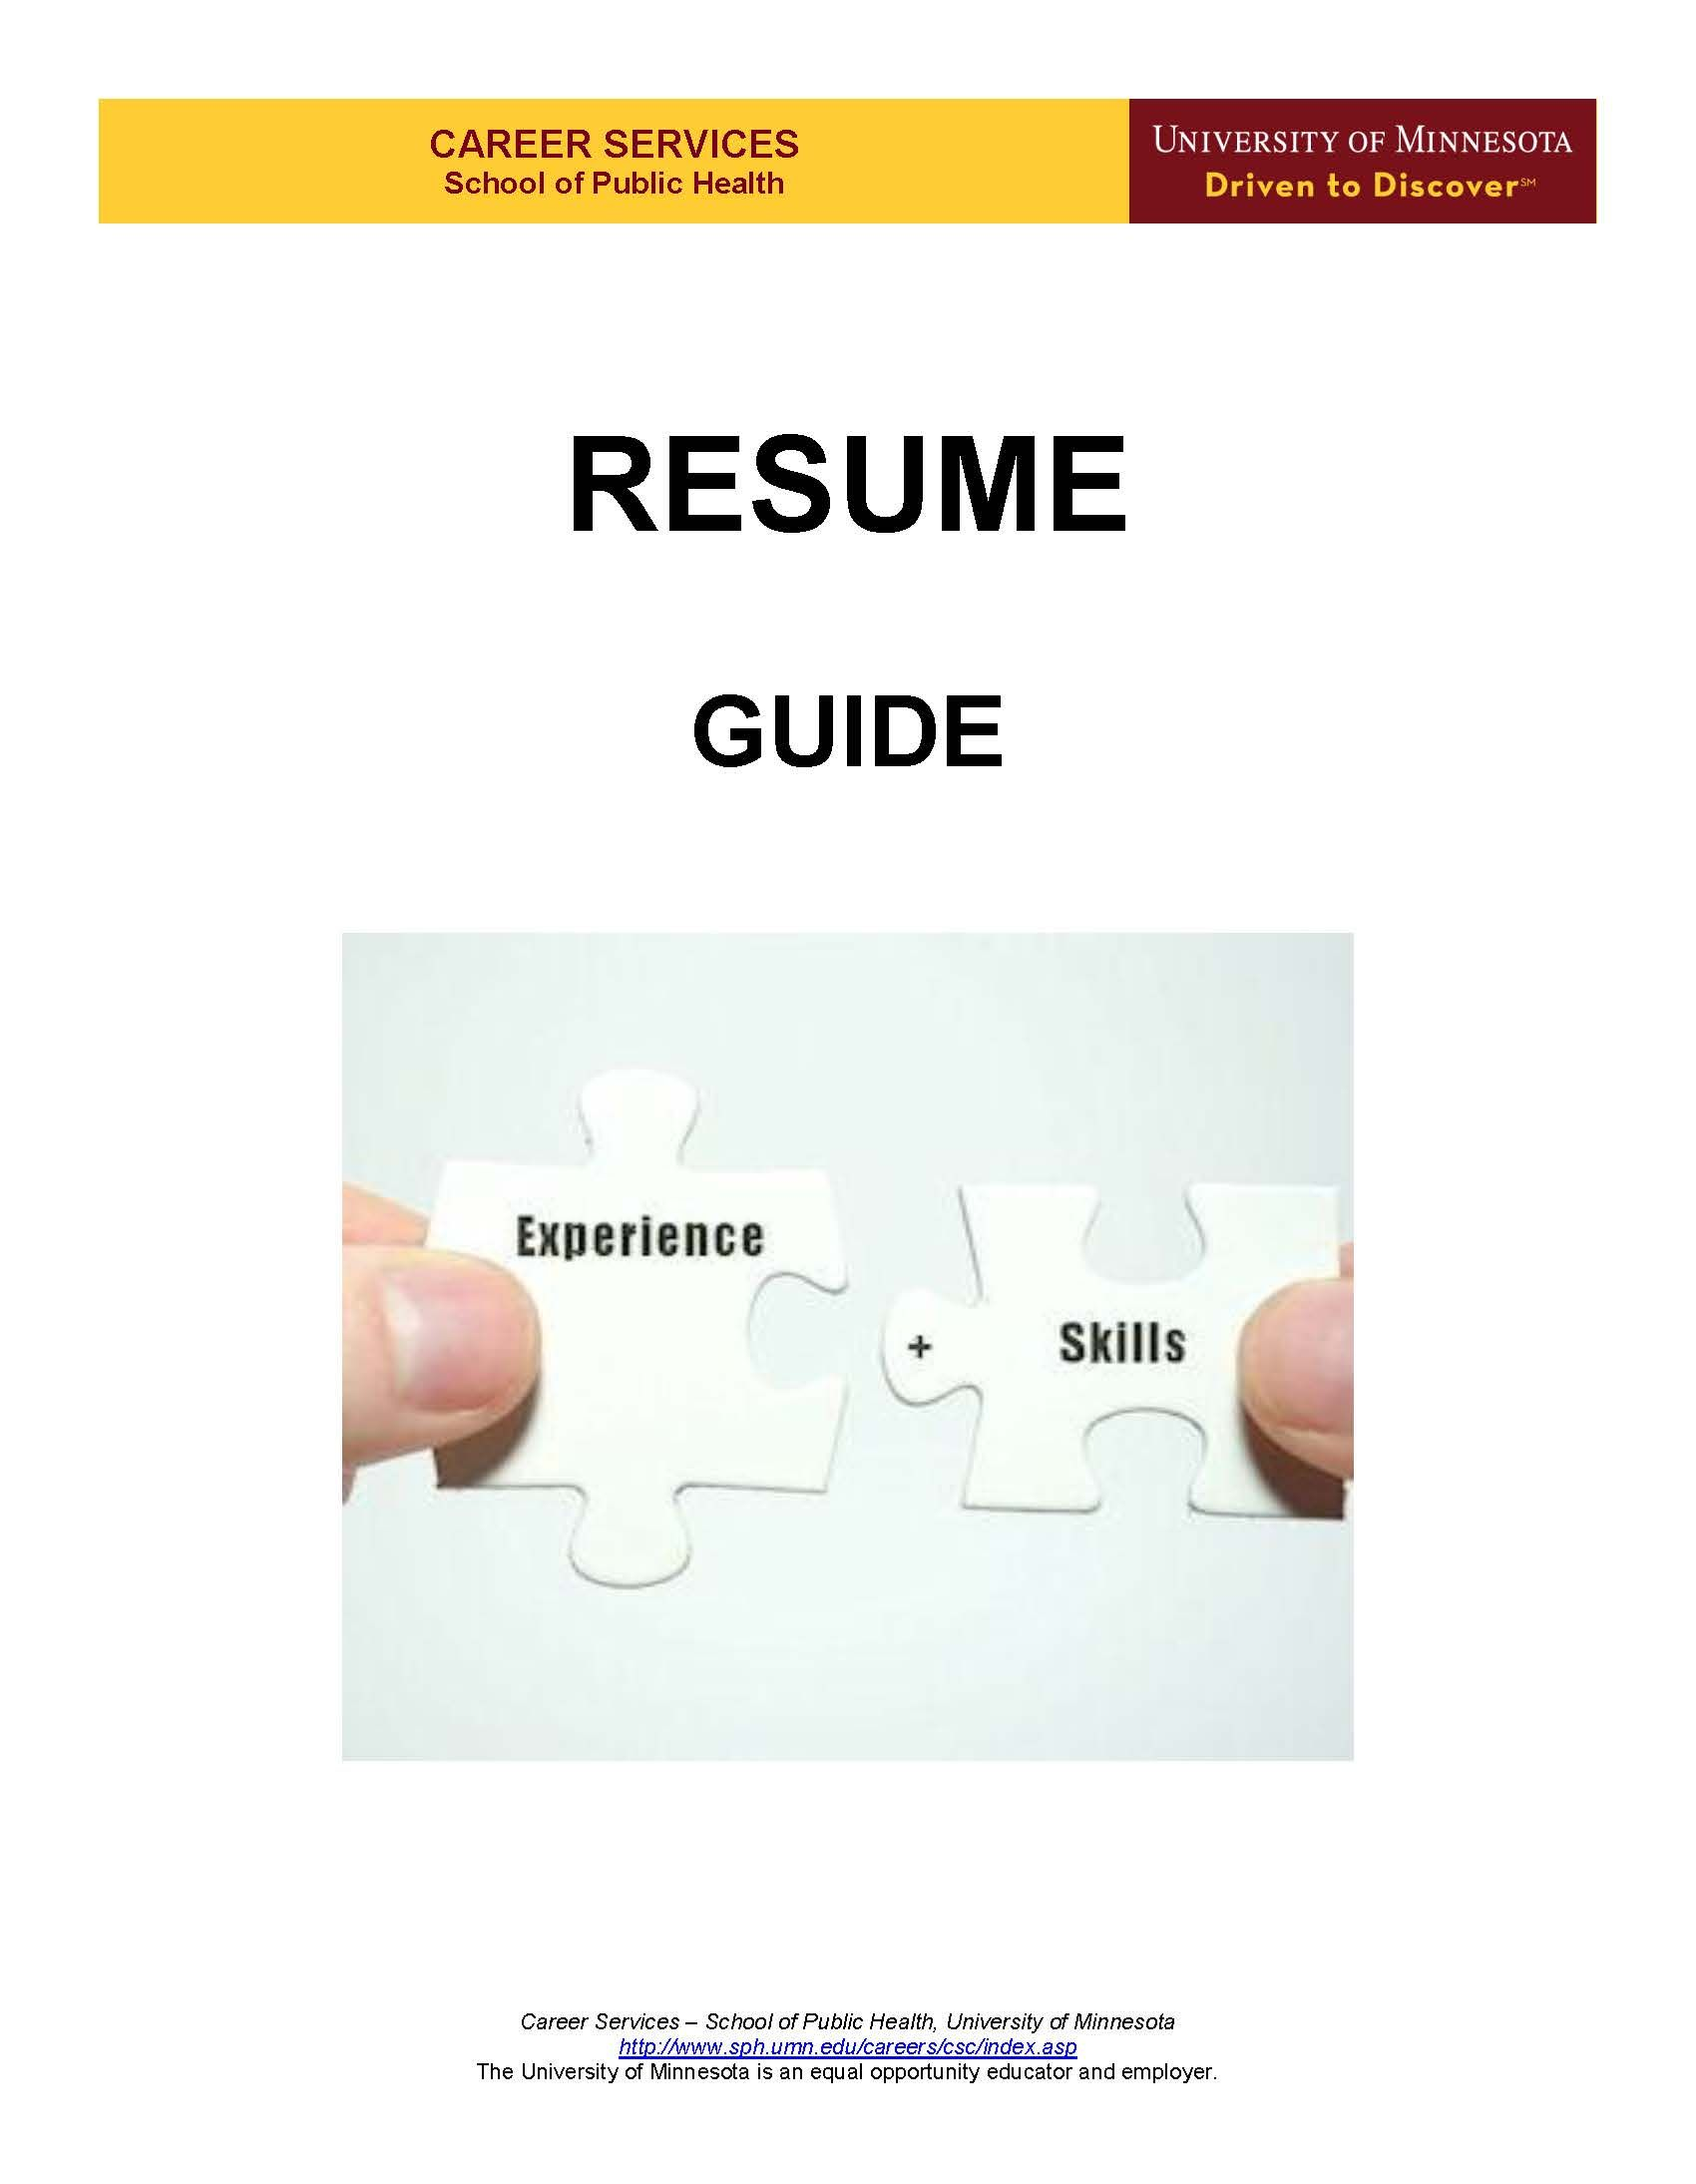 Resume Guide (Cover Page) Resume guide, Resume